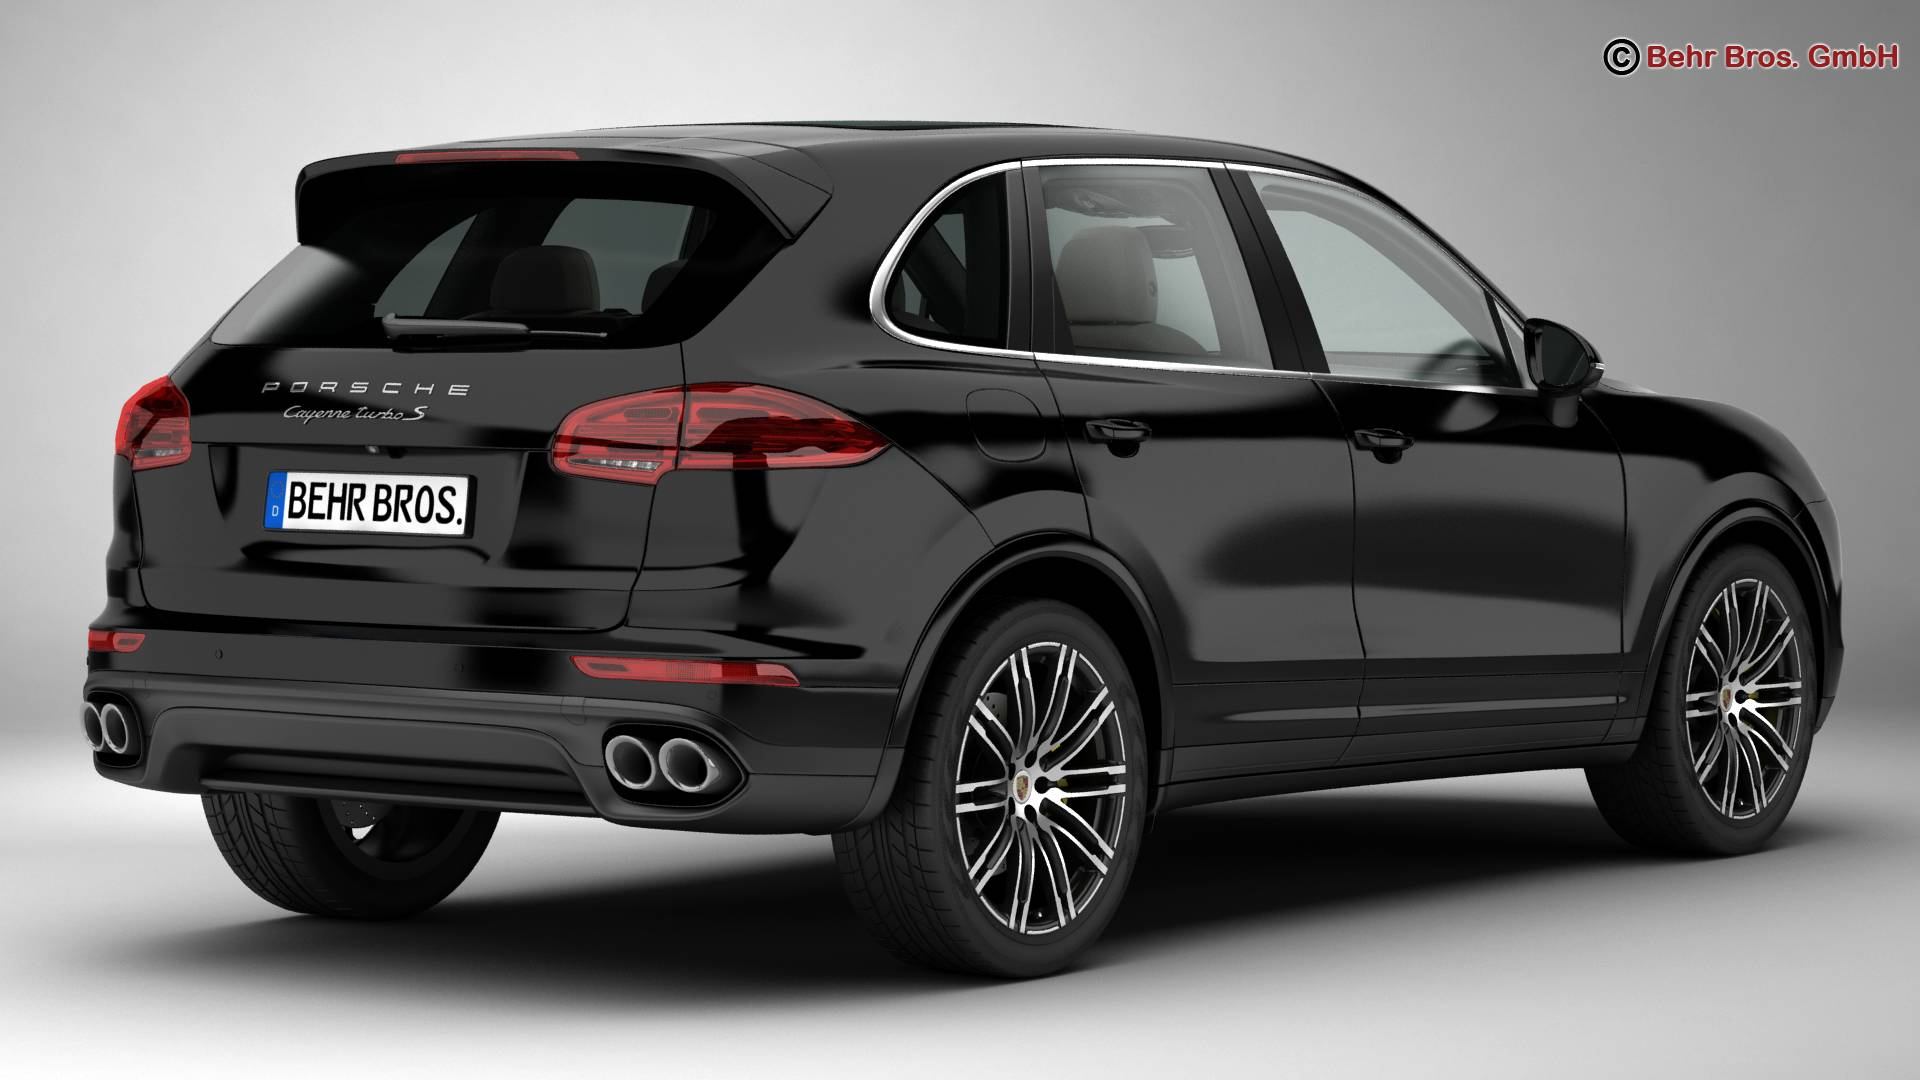 porsche cayenne turbo s 2016 3d model buy porsche cayenne turbo s 2016 3d model flatpyramid. Black Bedroom Furniture Sets. Home Design Ideas